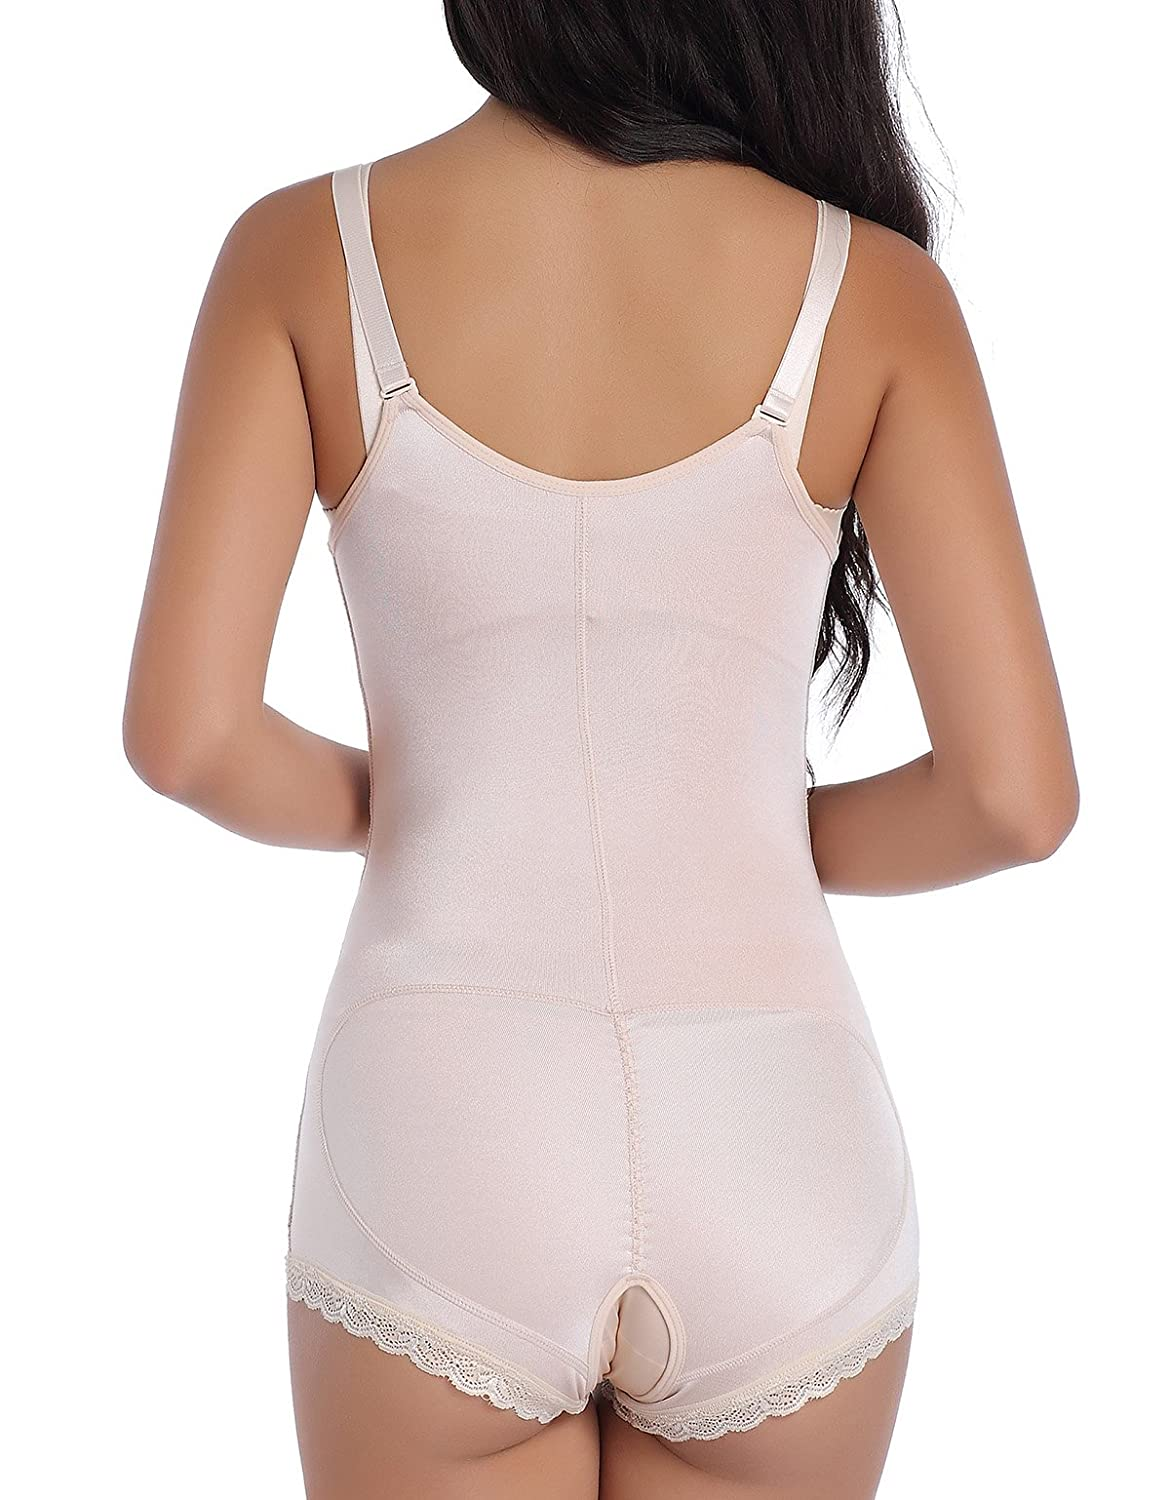 886f67a9183 EESIM Women s Firm Tummy Control Shapewear Body Shaper with Zipper  Bodysuits Open Bust Body Briefer Slimmer at Amazon Women s Clothing store